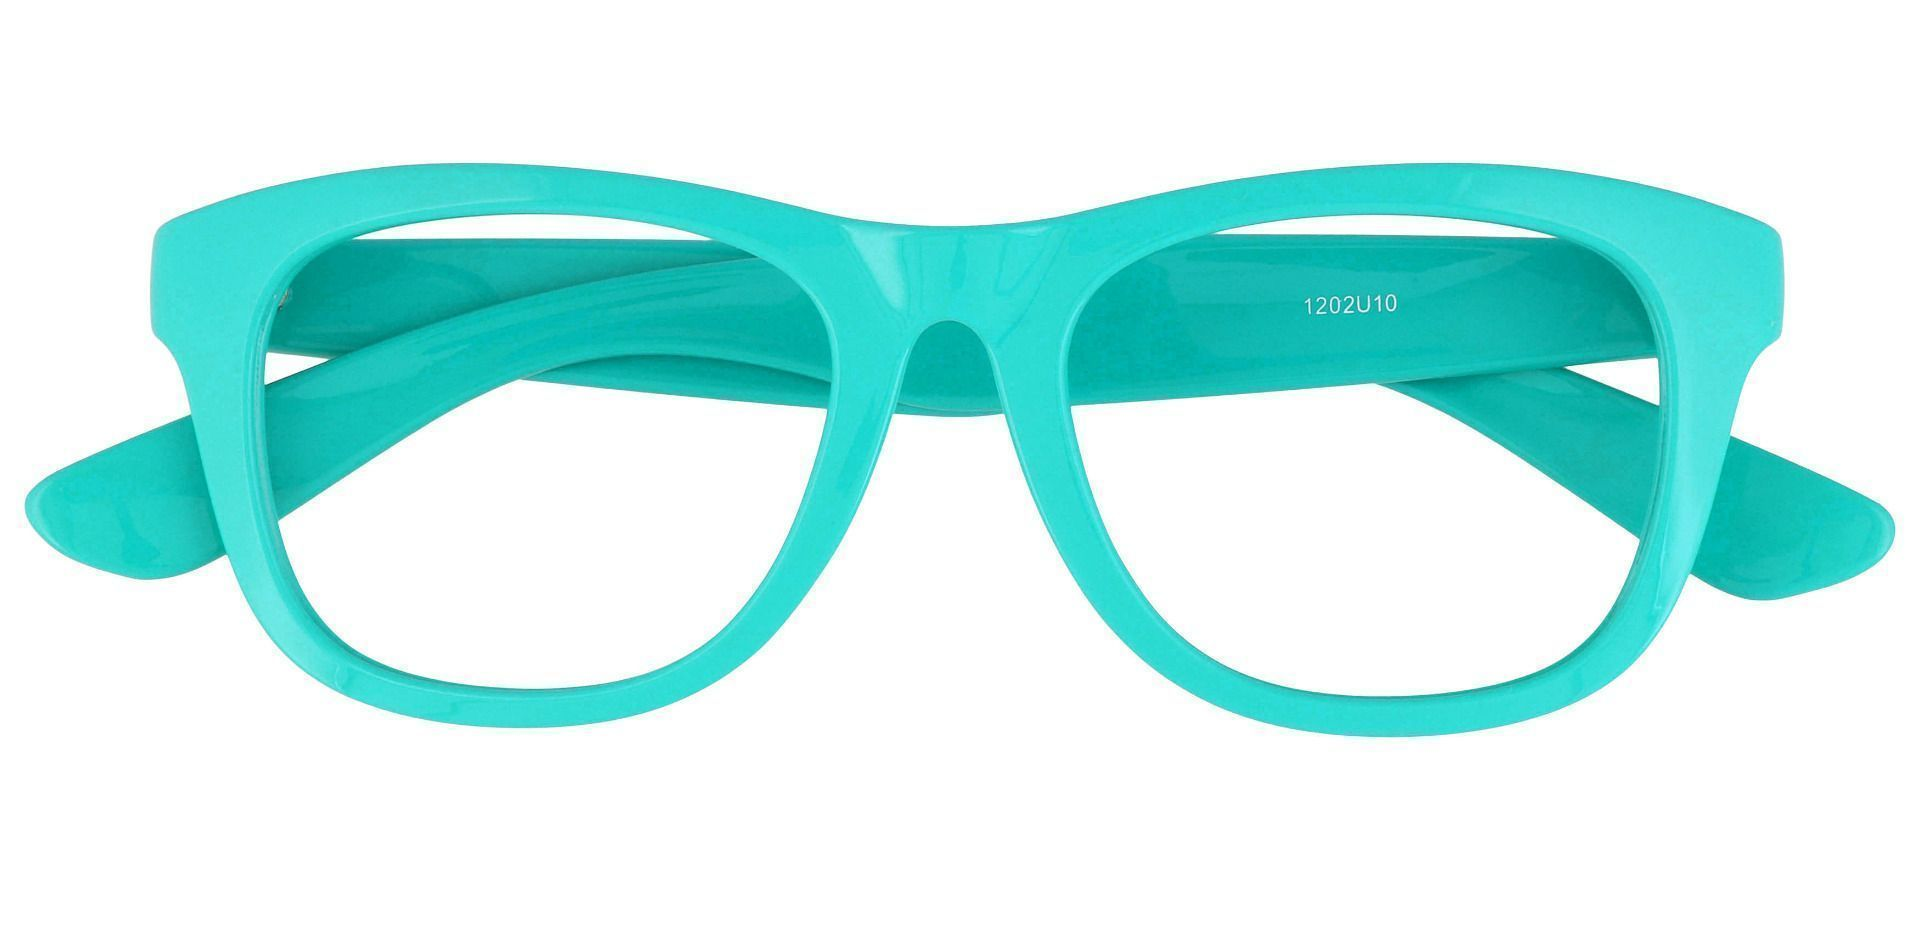 Tyre Square Eyeglasses Frame - Blue